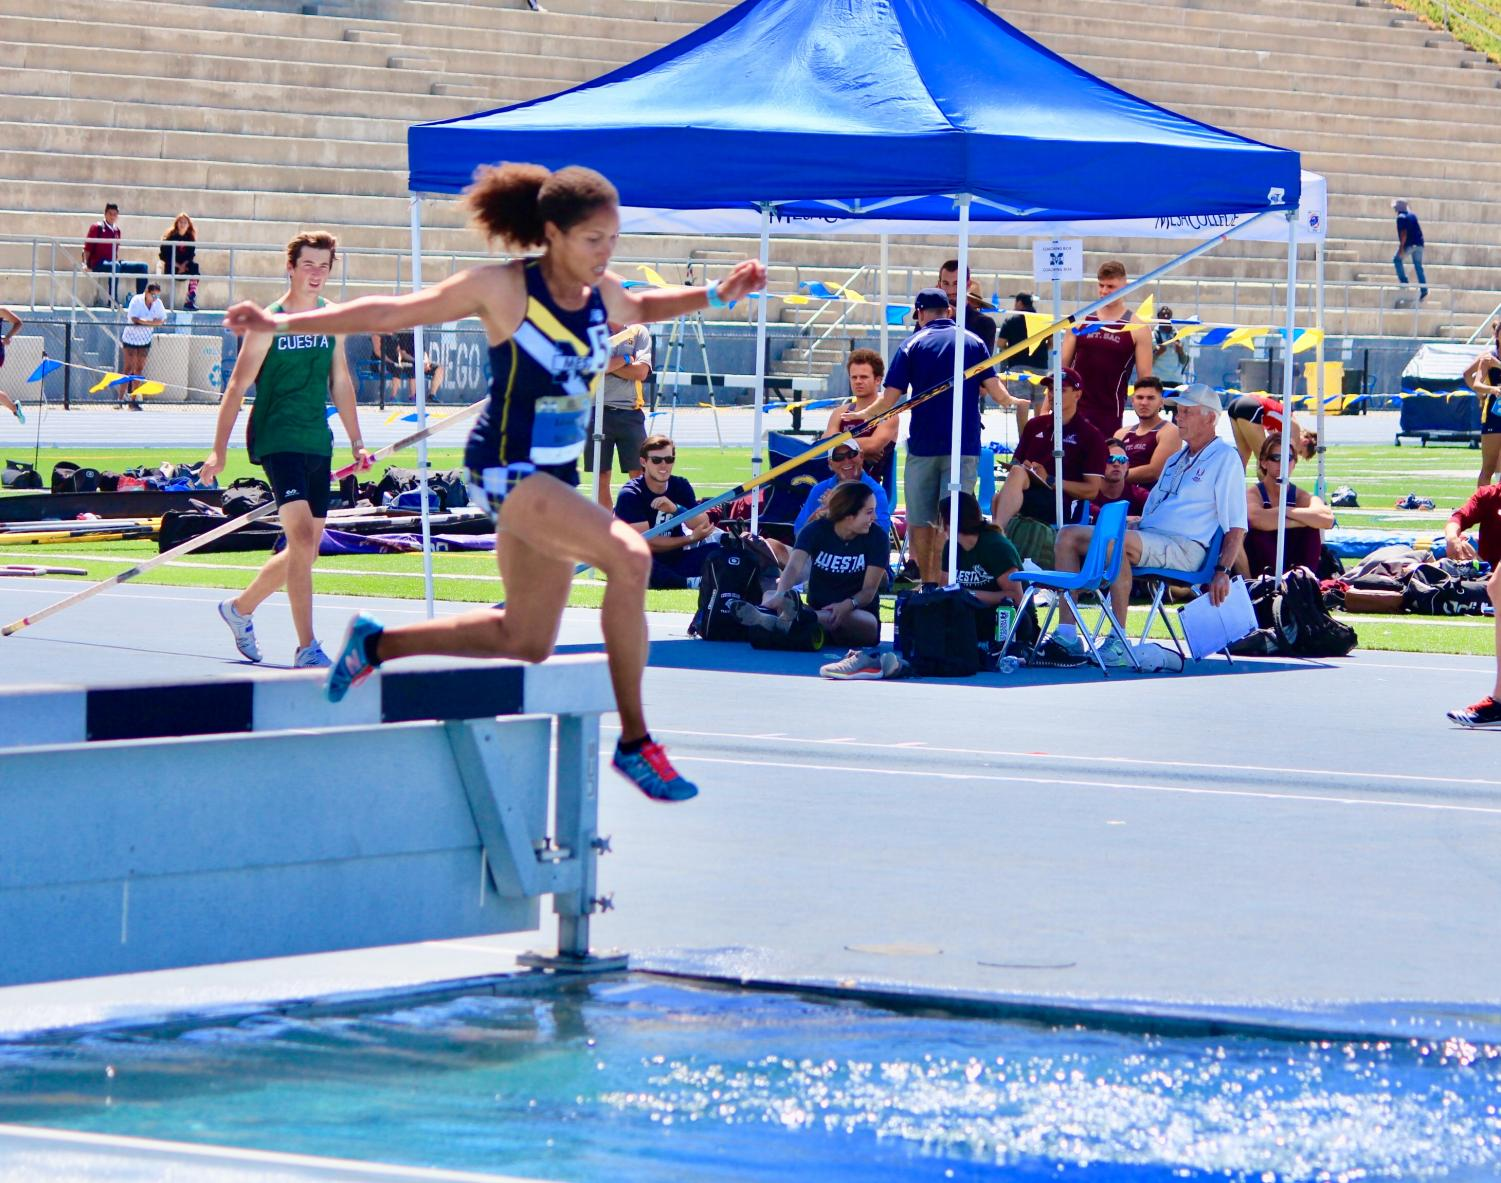 Sophomore distance runner Erica Edwards jumps her way into the 3000m steeplechase final. Picture credit to, Jeff Eichler